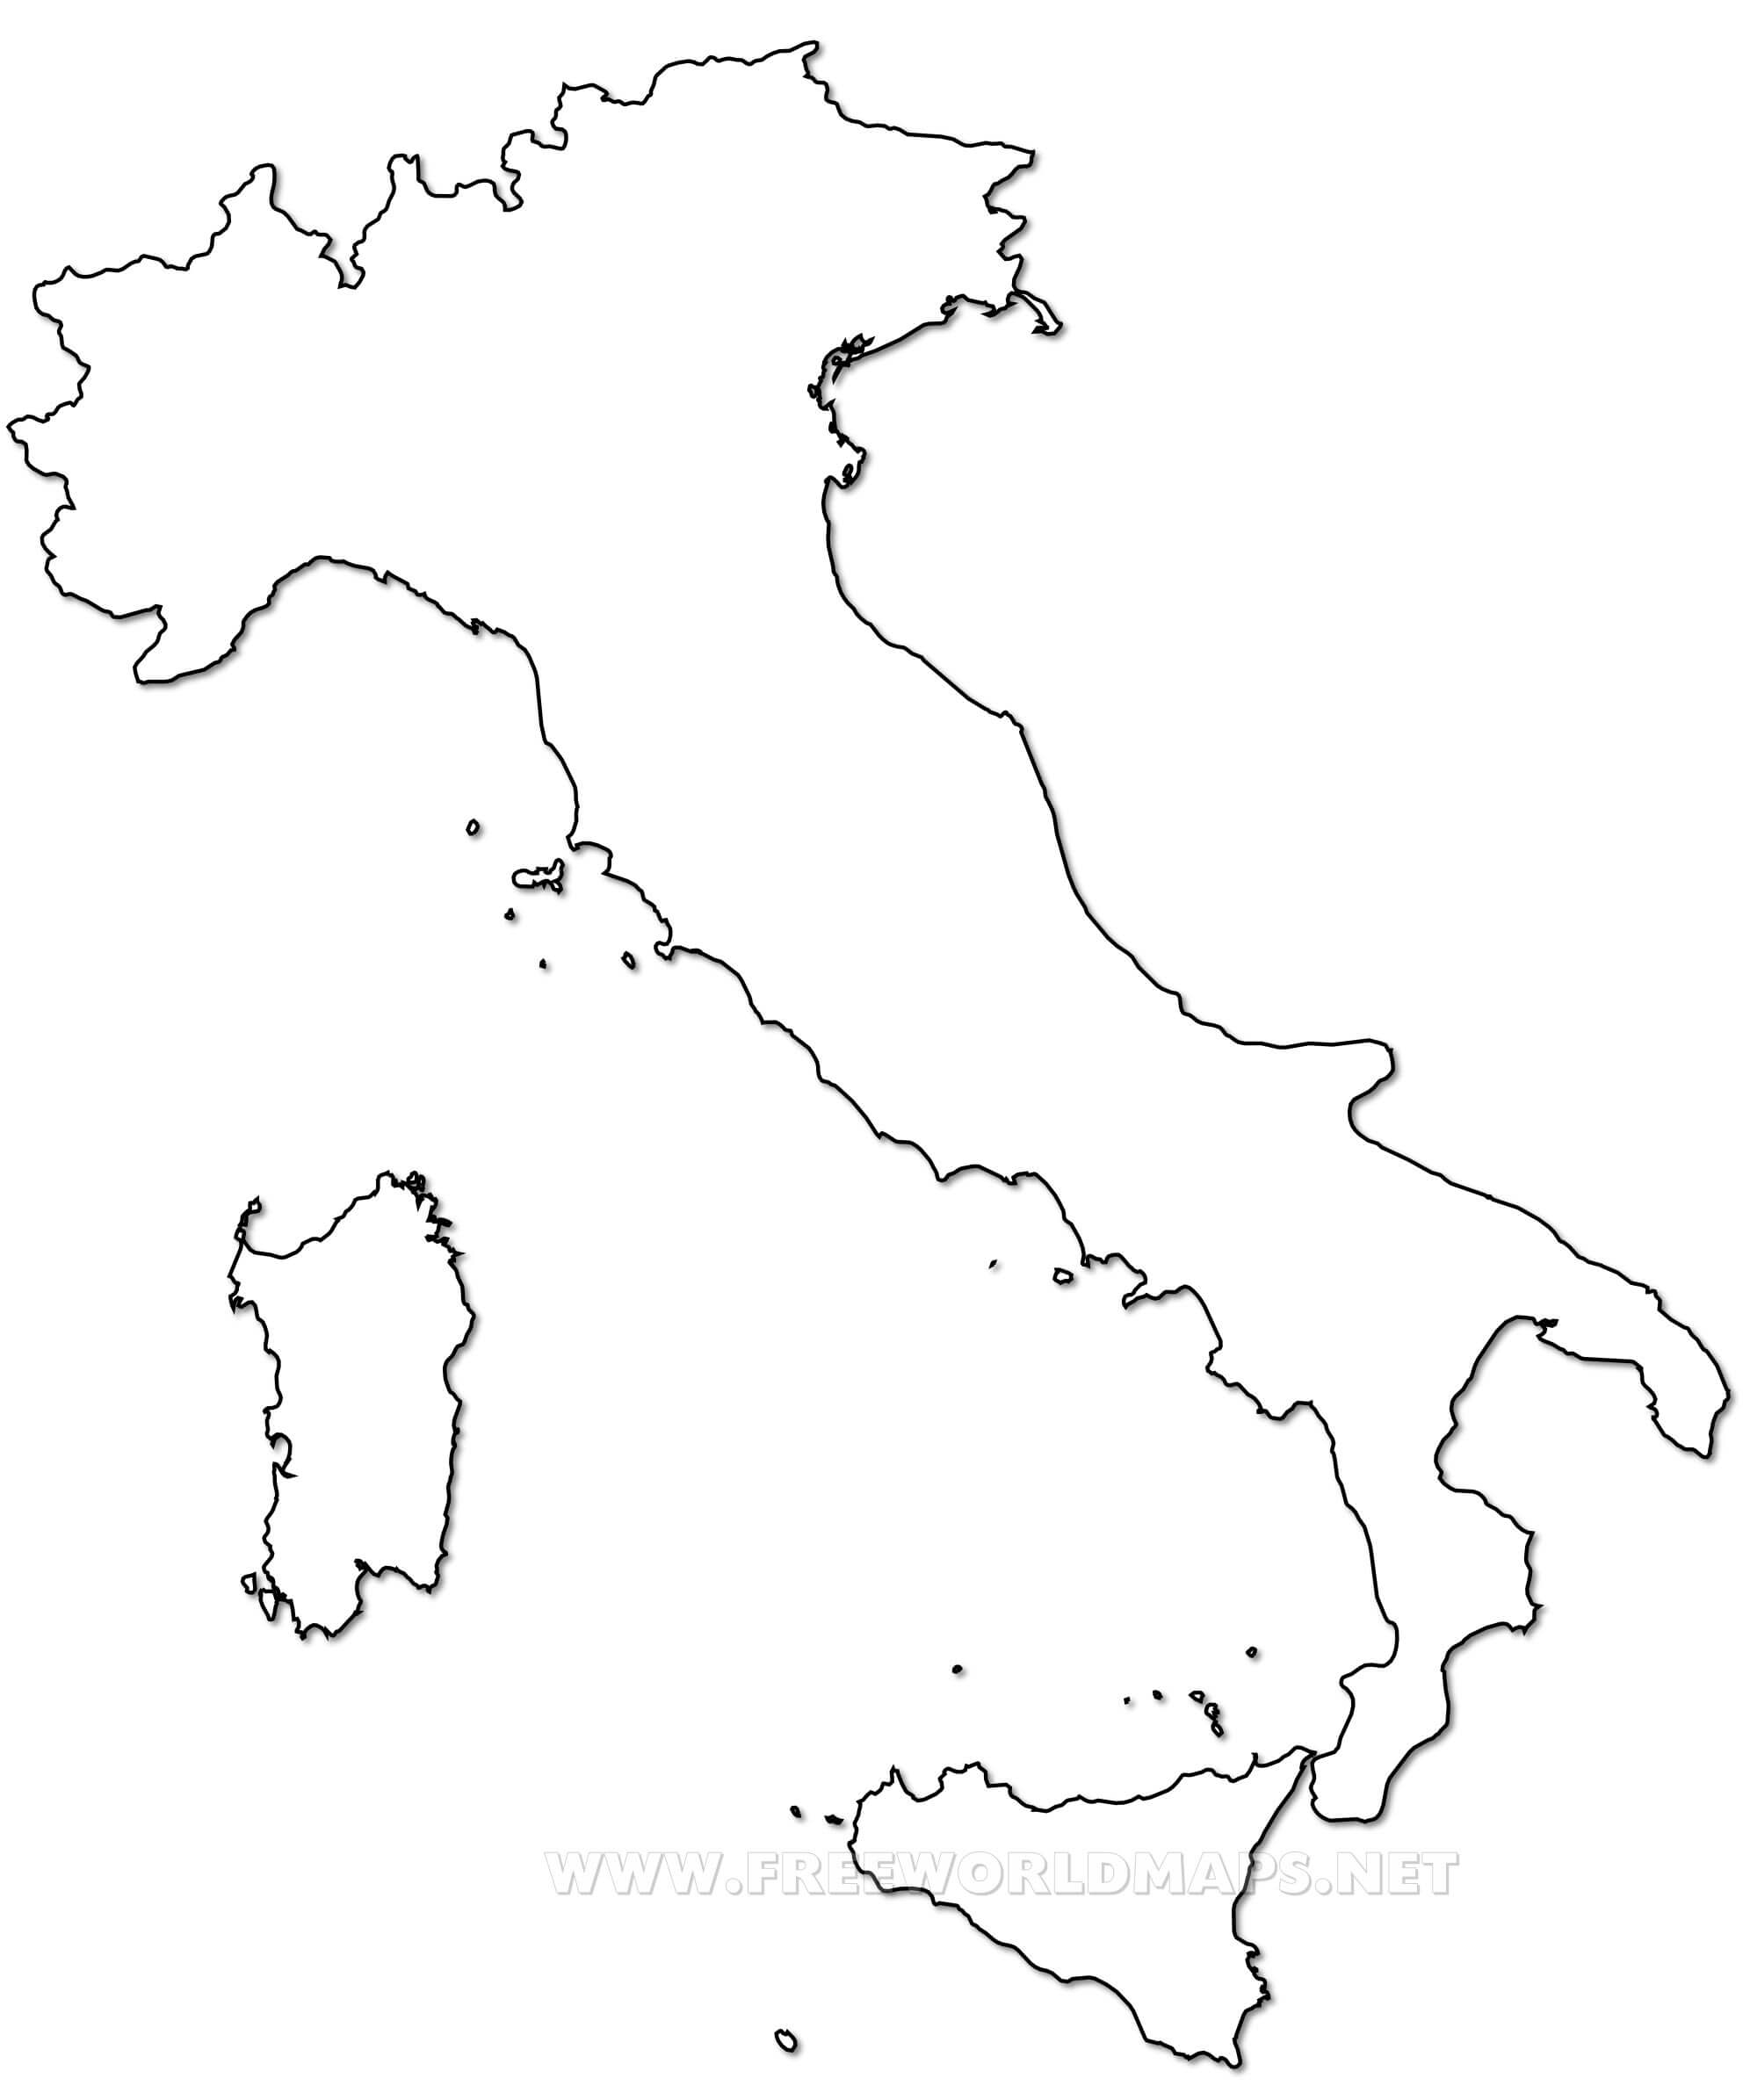 Blank Map Of Italy Italy Political Map Blank Map Of Italy